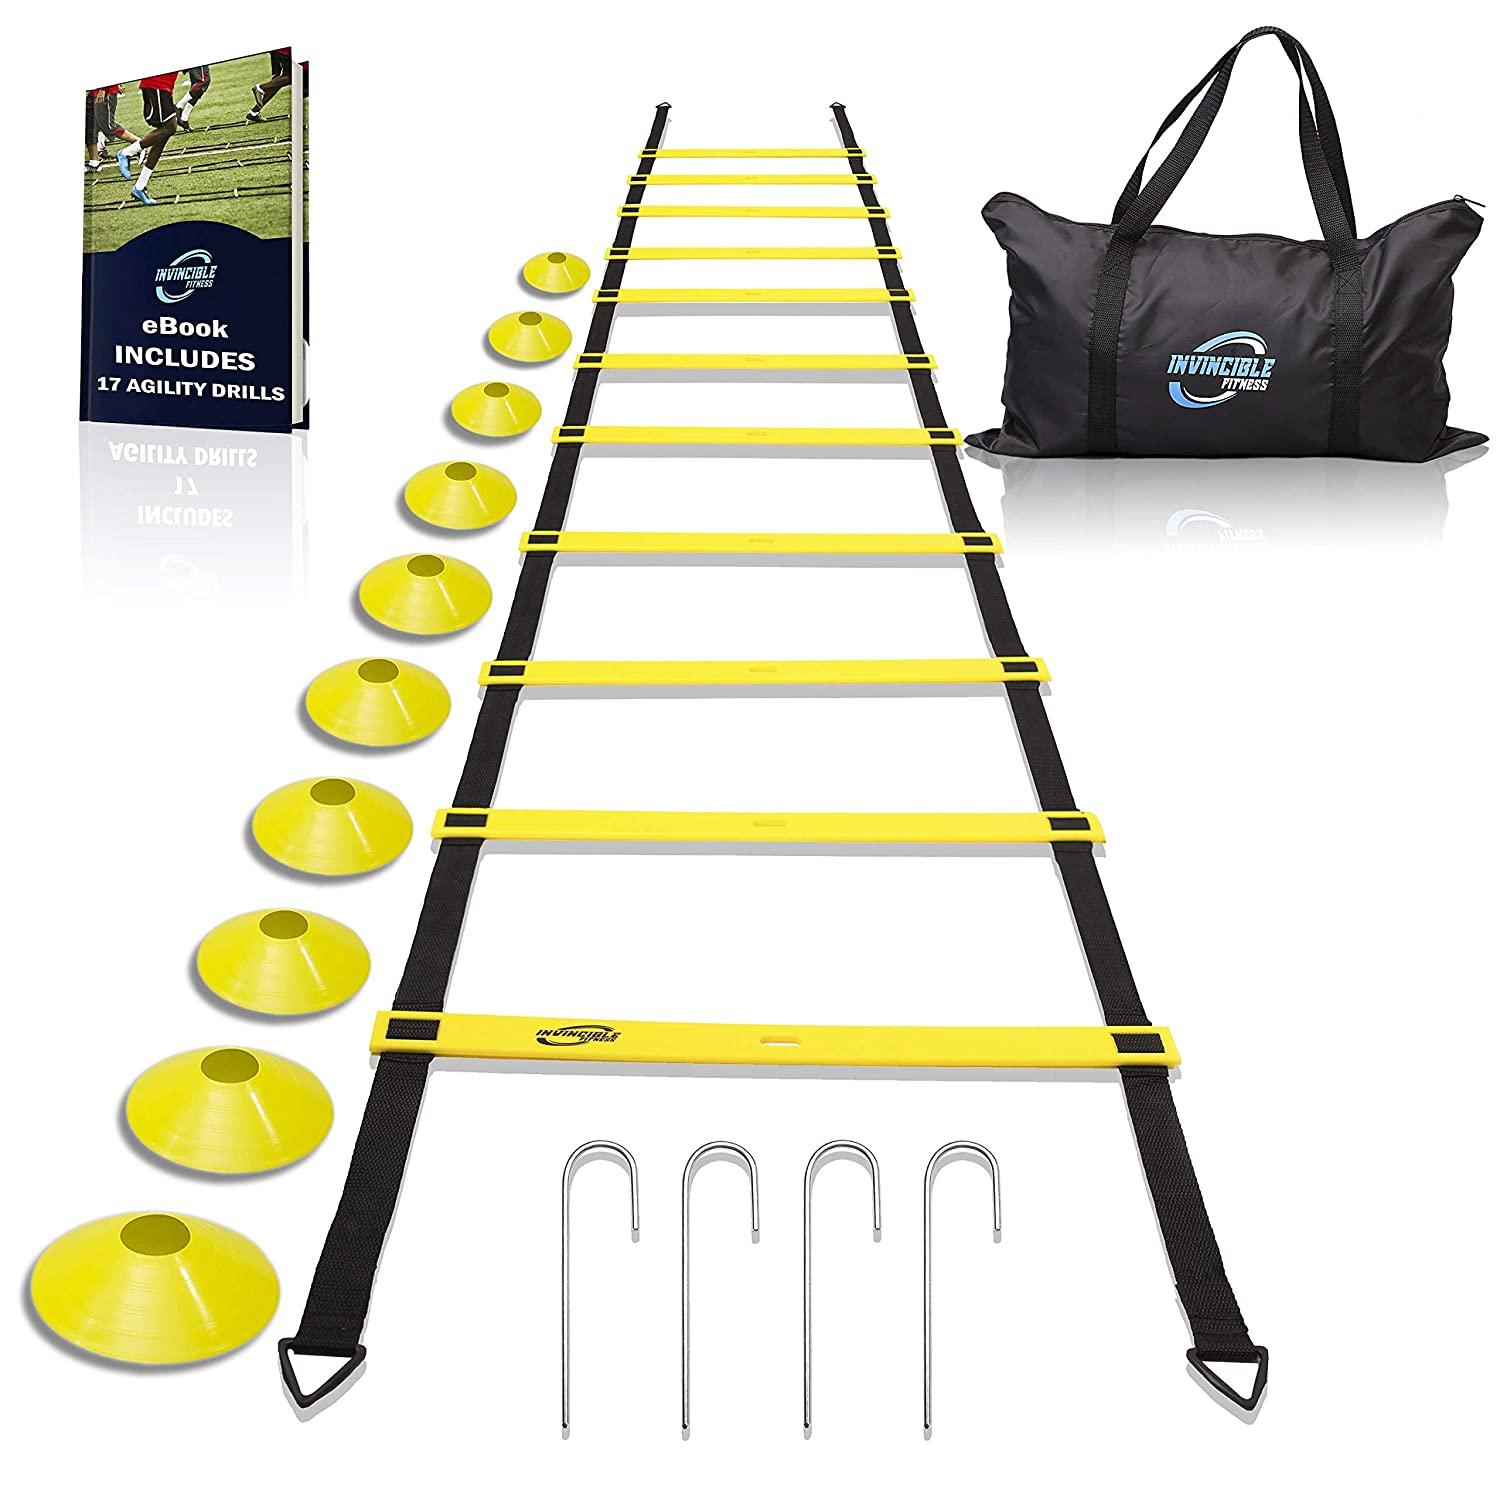 0a5ee0cb7 Invincible Fitness Agility Ladder Training Equipment Set, Improves  Coordination, Speed, Explosive Power and Strength, Includes 10 Cones + 4  Hooks for ...